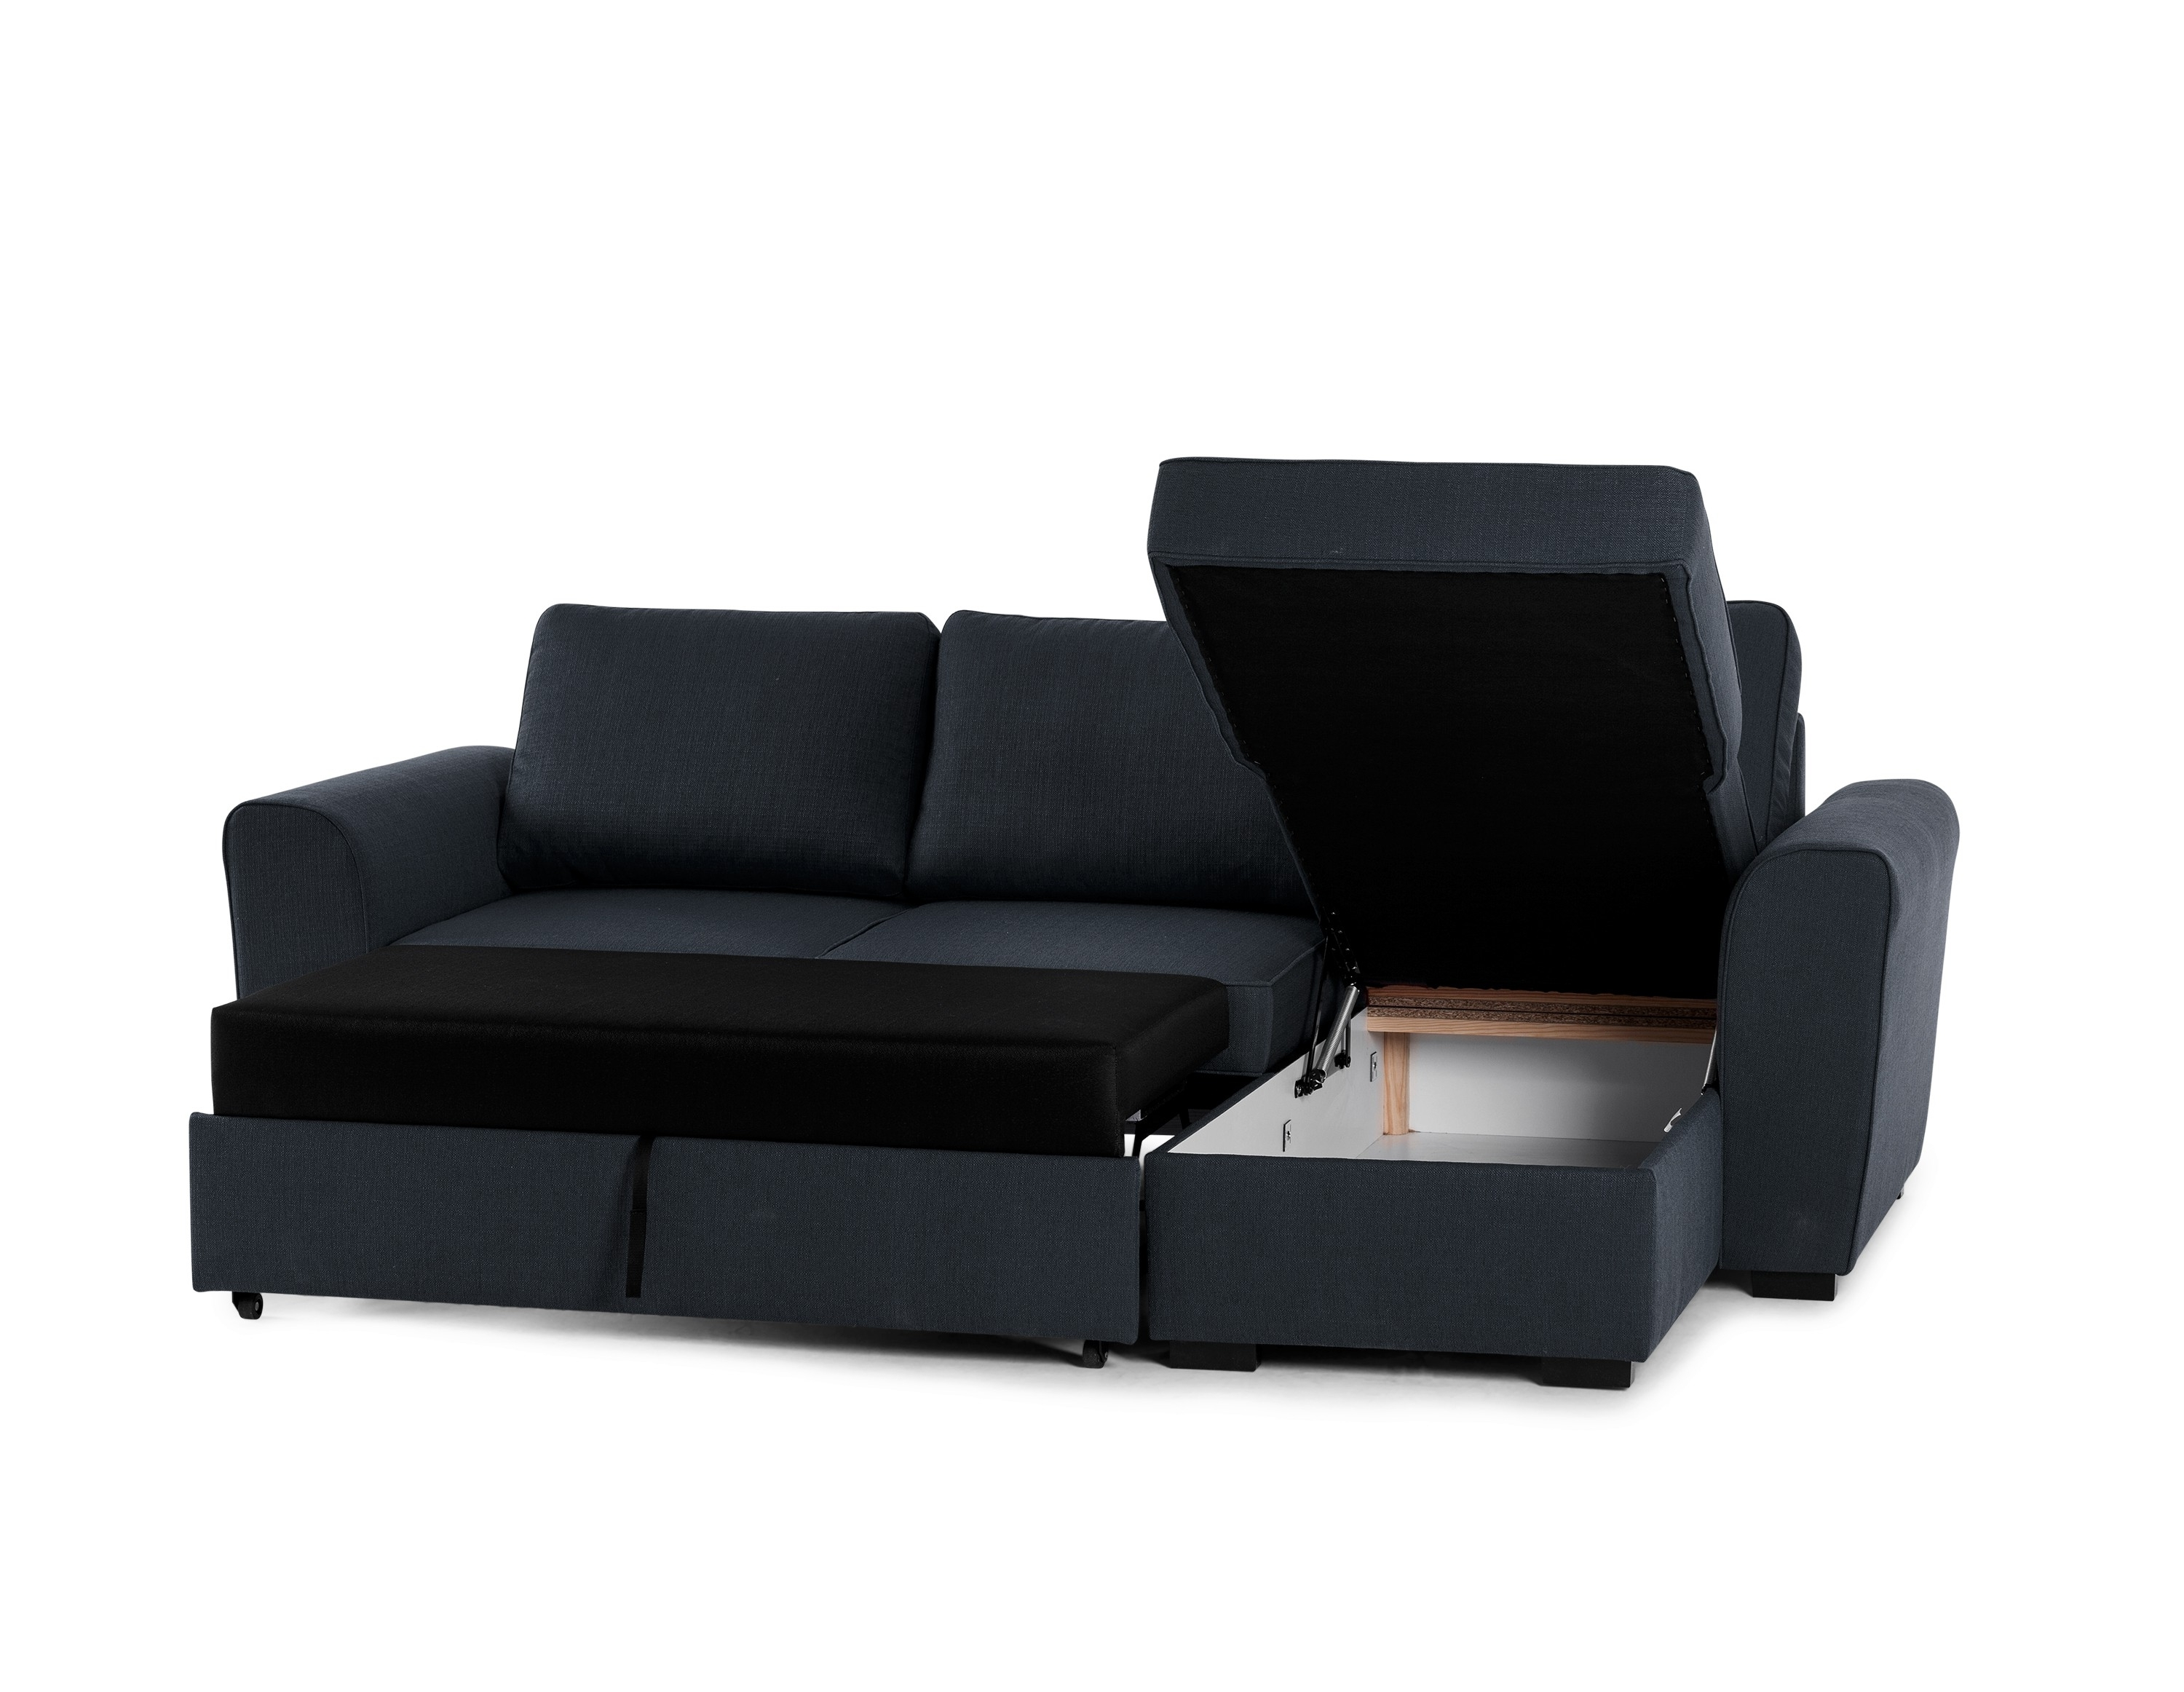 Leather Armchair And Ottoman Chaise Sofa With Storage Ottoman In Most Up To Date Leather Sofas With Storage (View 10 of 20)